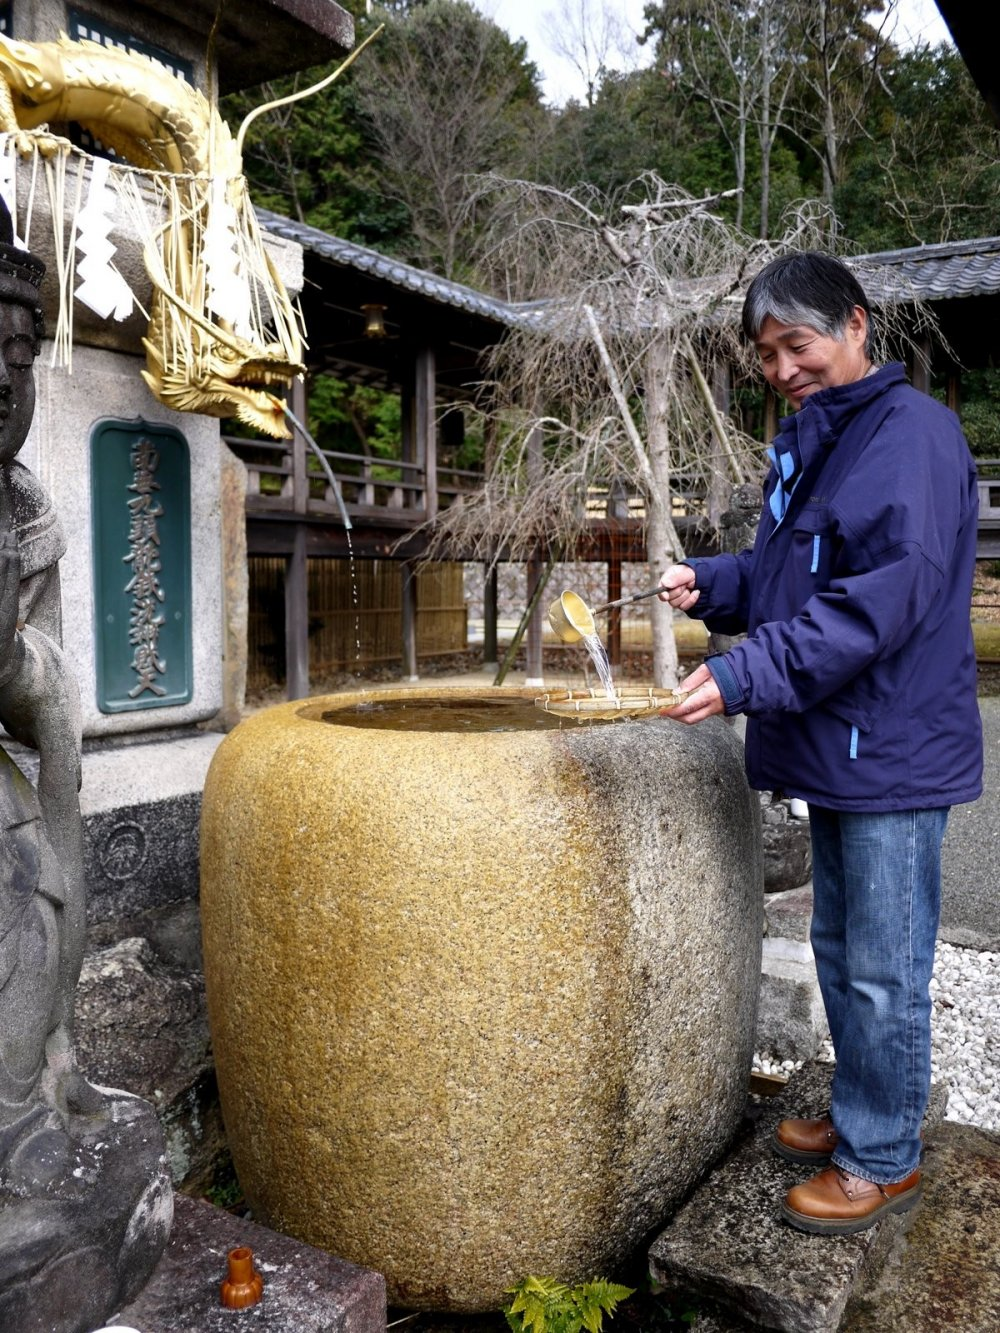 This man was washing coins, but I saw other people washing 10,000 yen notes and even a Lotto ticket!